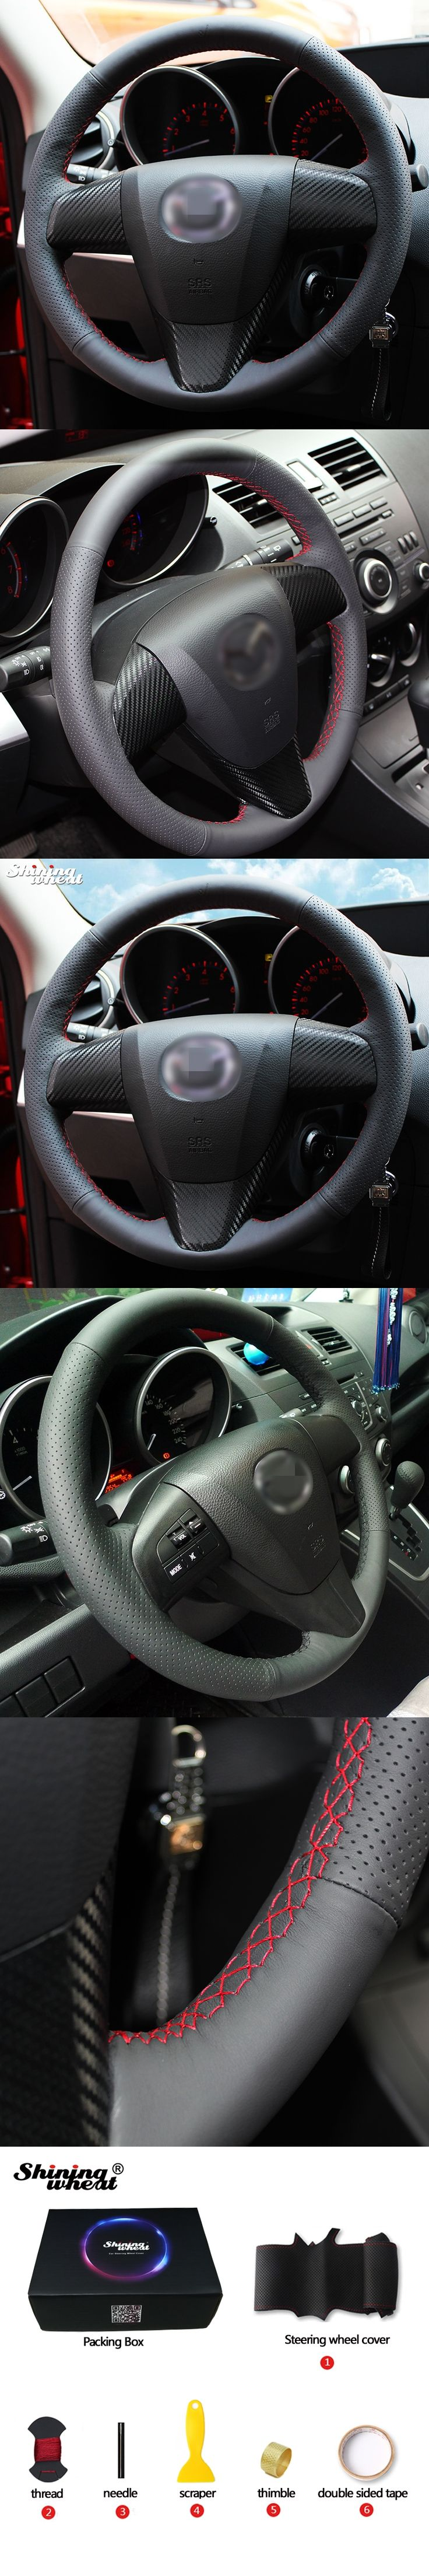 Hand-stitched Black Leather Steering Wheel Cover for 2011-2013 Mazda 3 Mazda CX7